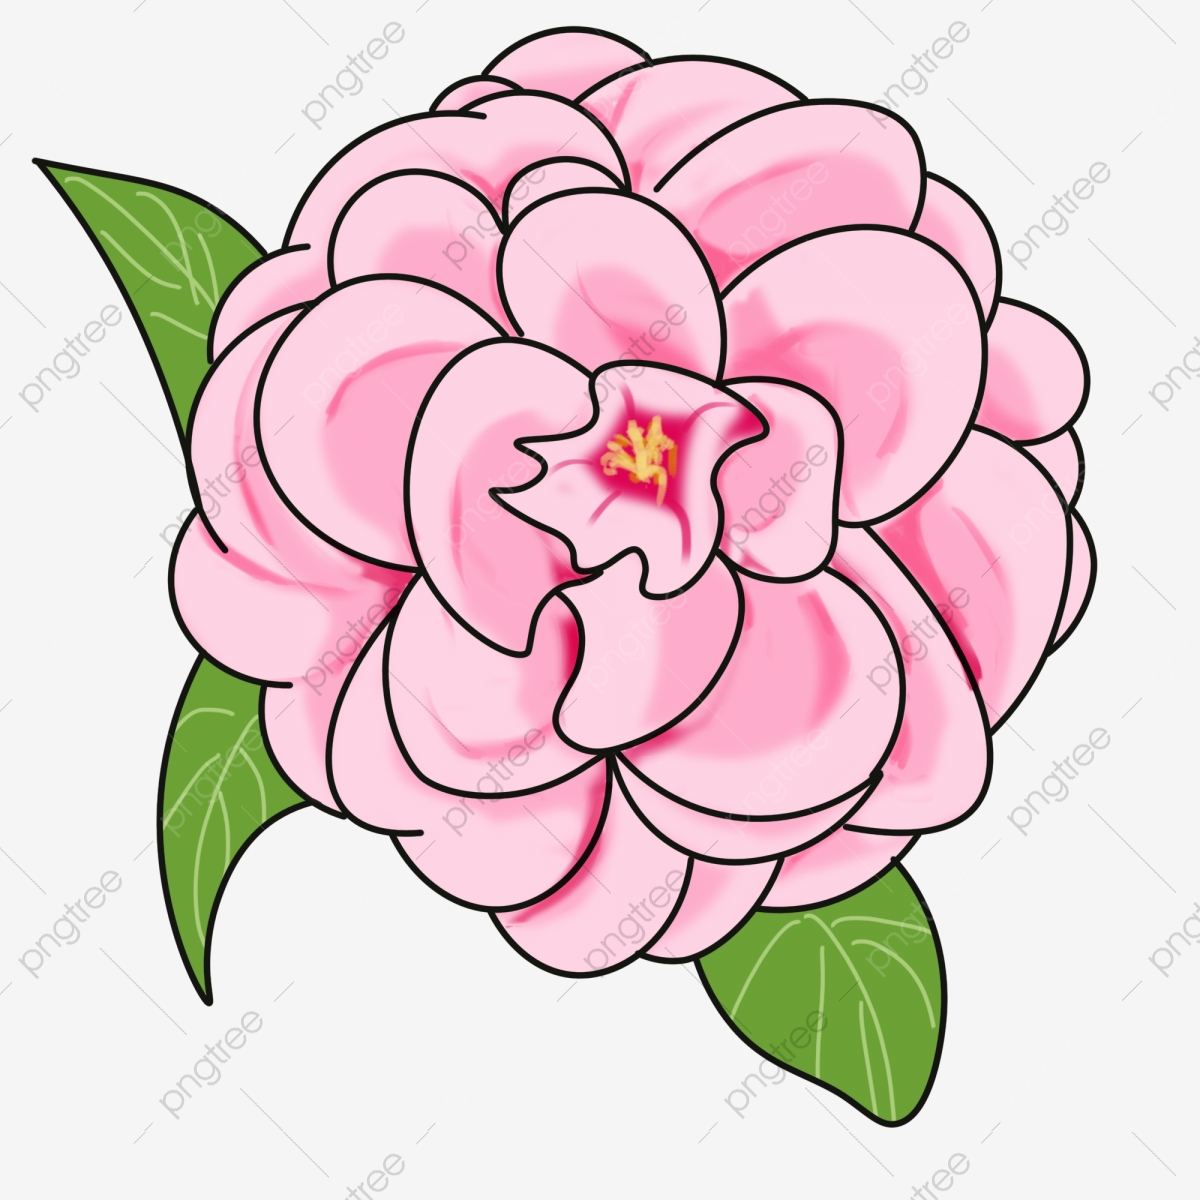 Camellia Illustration Cartoon Flower, Pink Camellia, Pink, Pink.